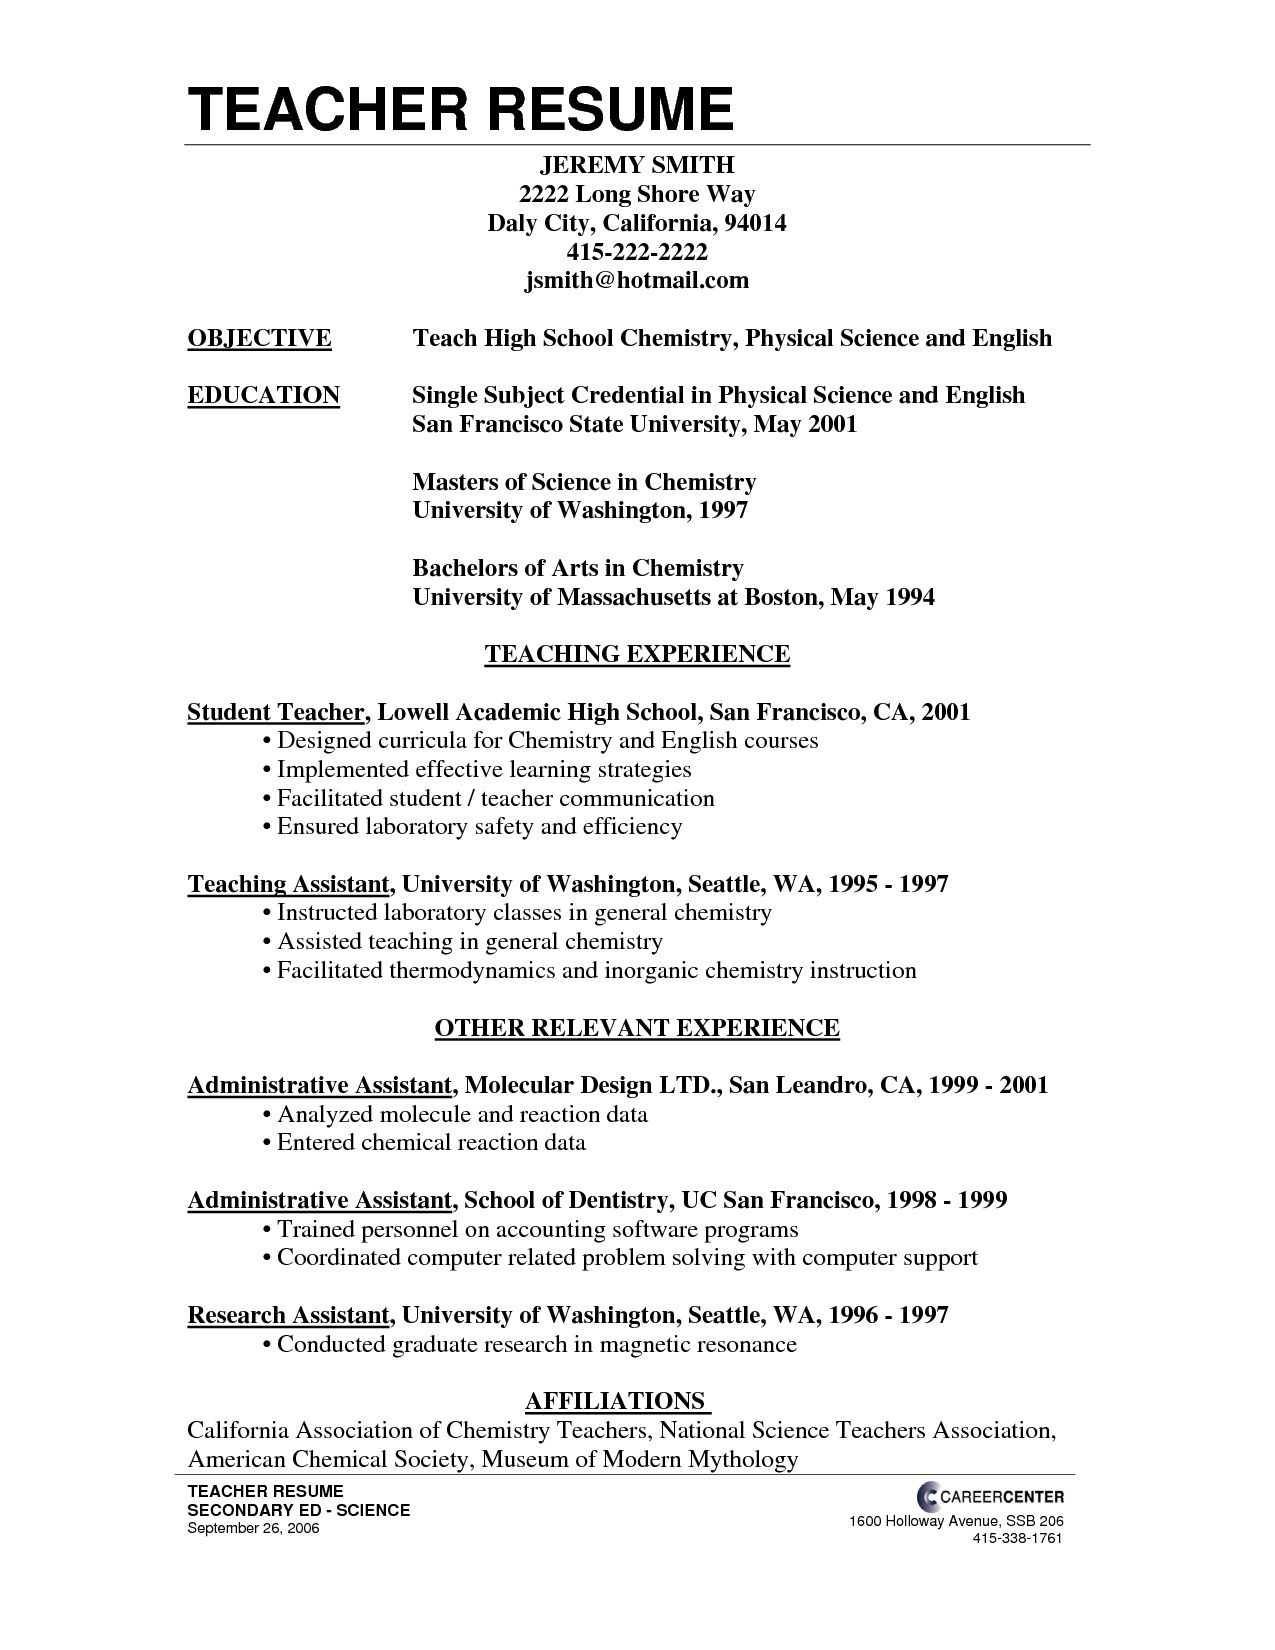 Resume For Teacher High School Teacher Resume  Getha Krisha  Pinterest  Teacher